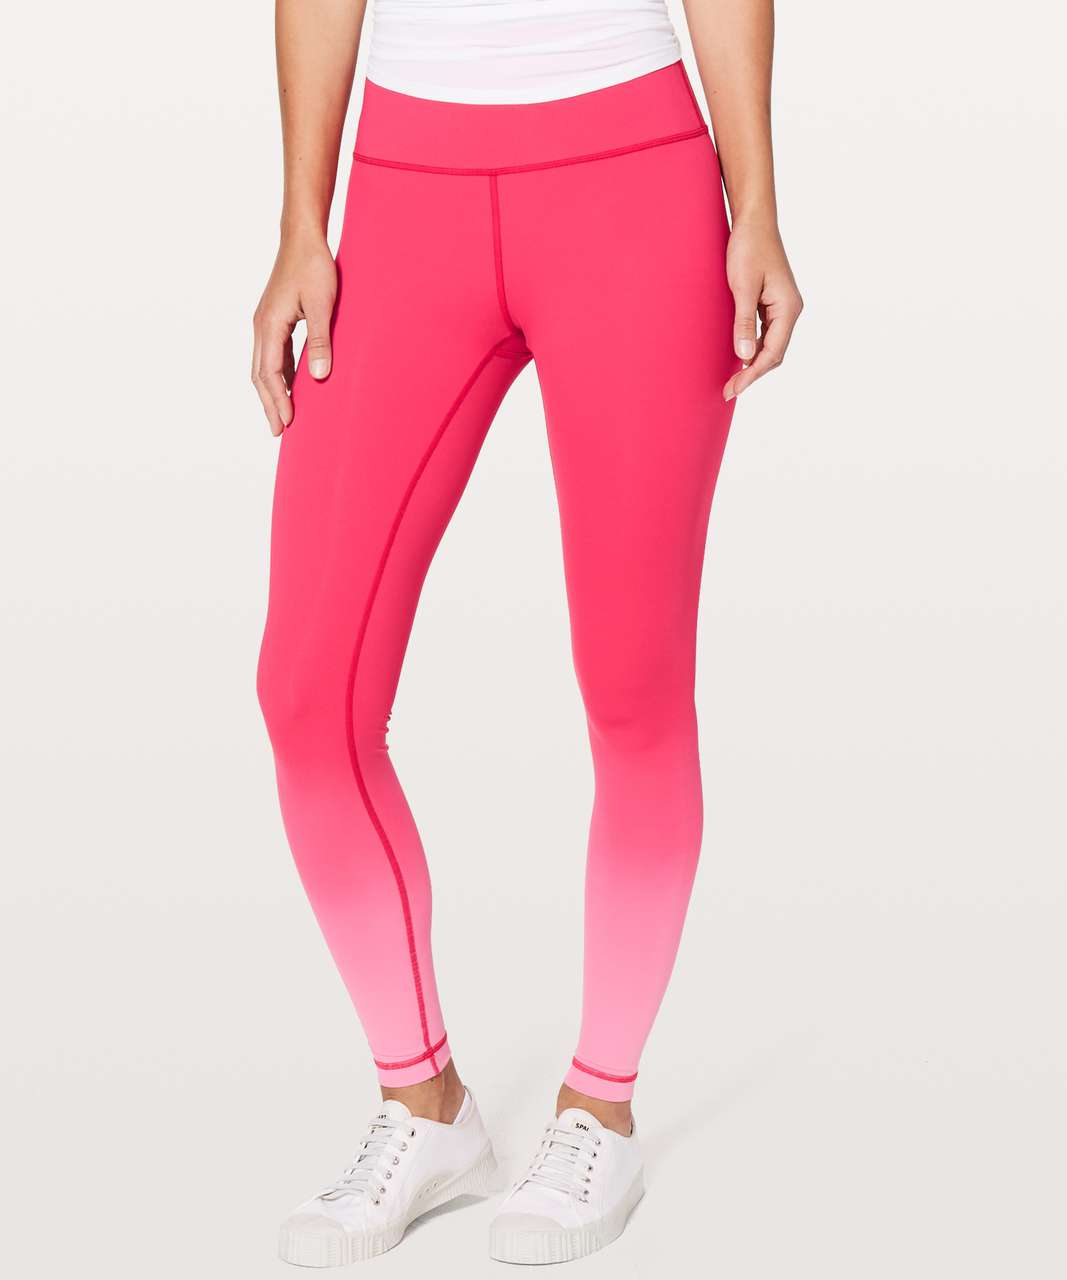 """Lululemon Wunder Under Hi-Rise Tight (Ombre) *28"""" - Ombre Fuchsia Pink"""